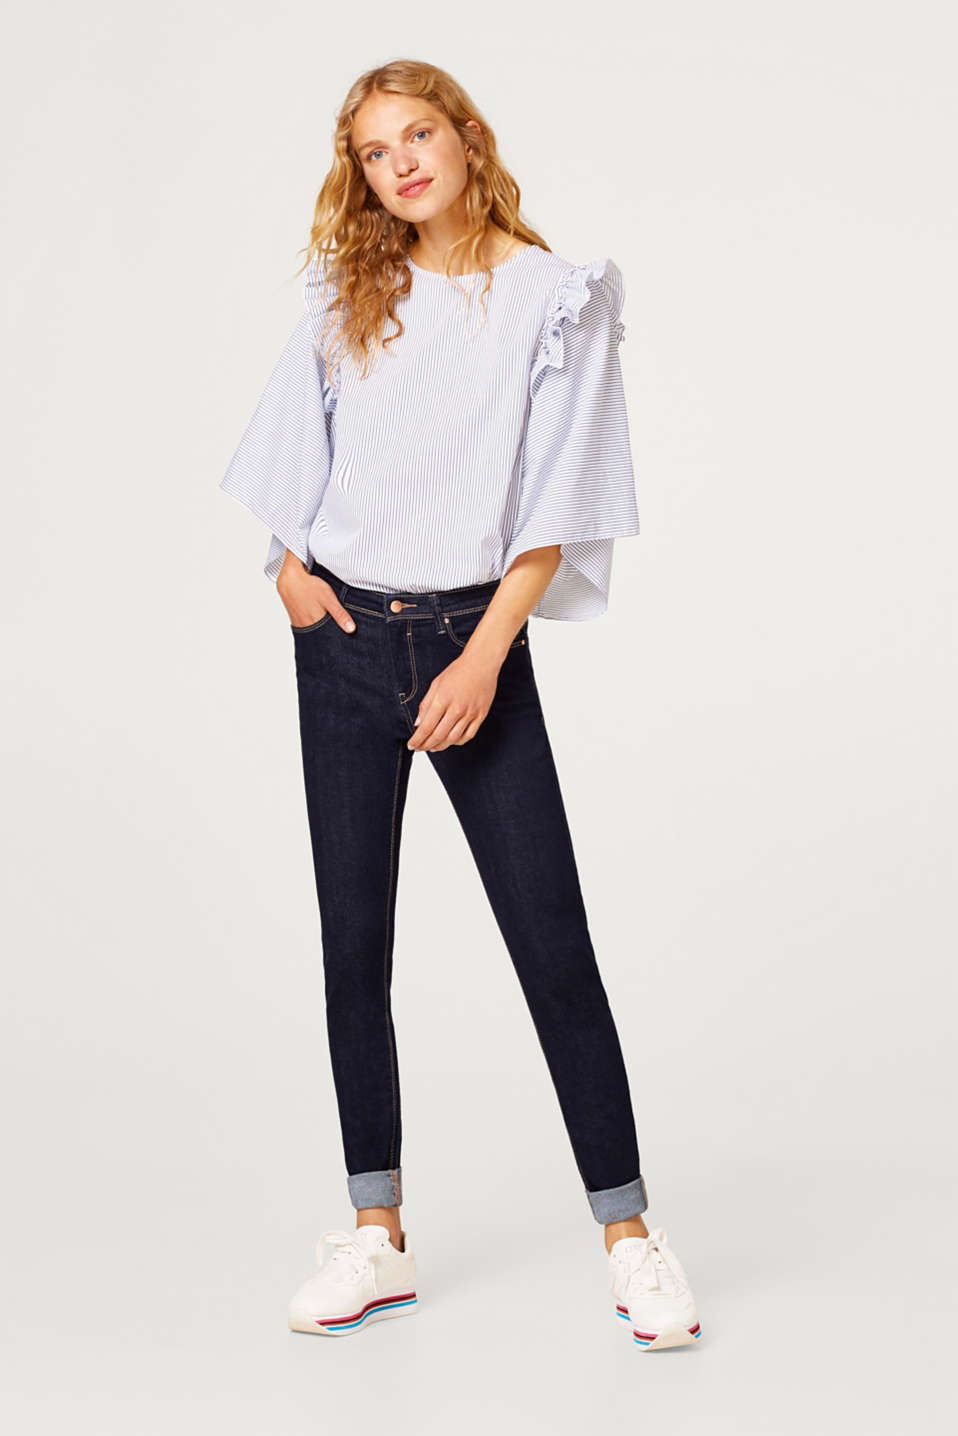 Esprit - Jeans stretch in denim scuro pulito